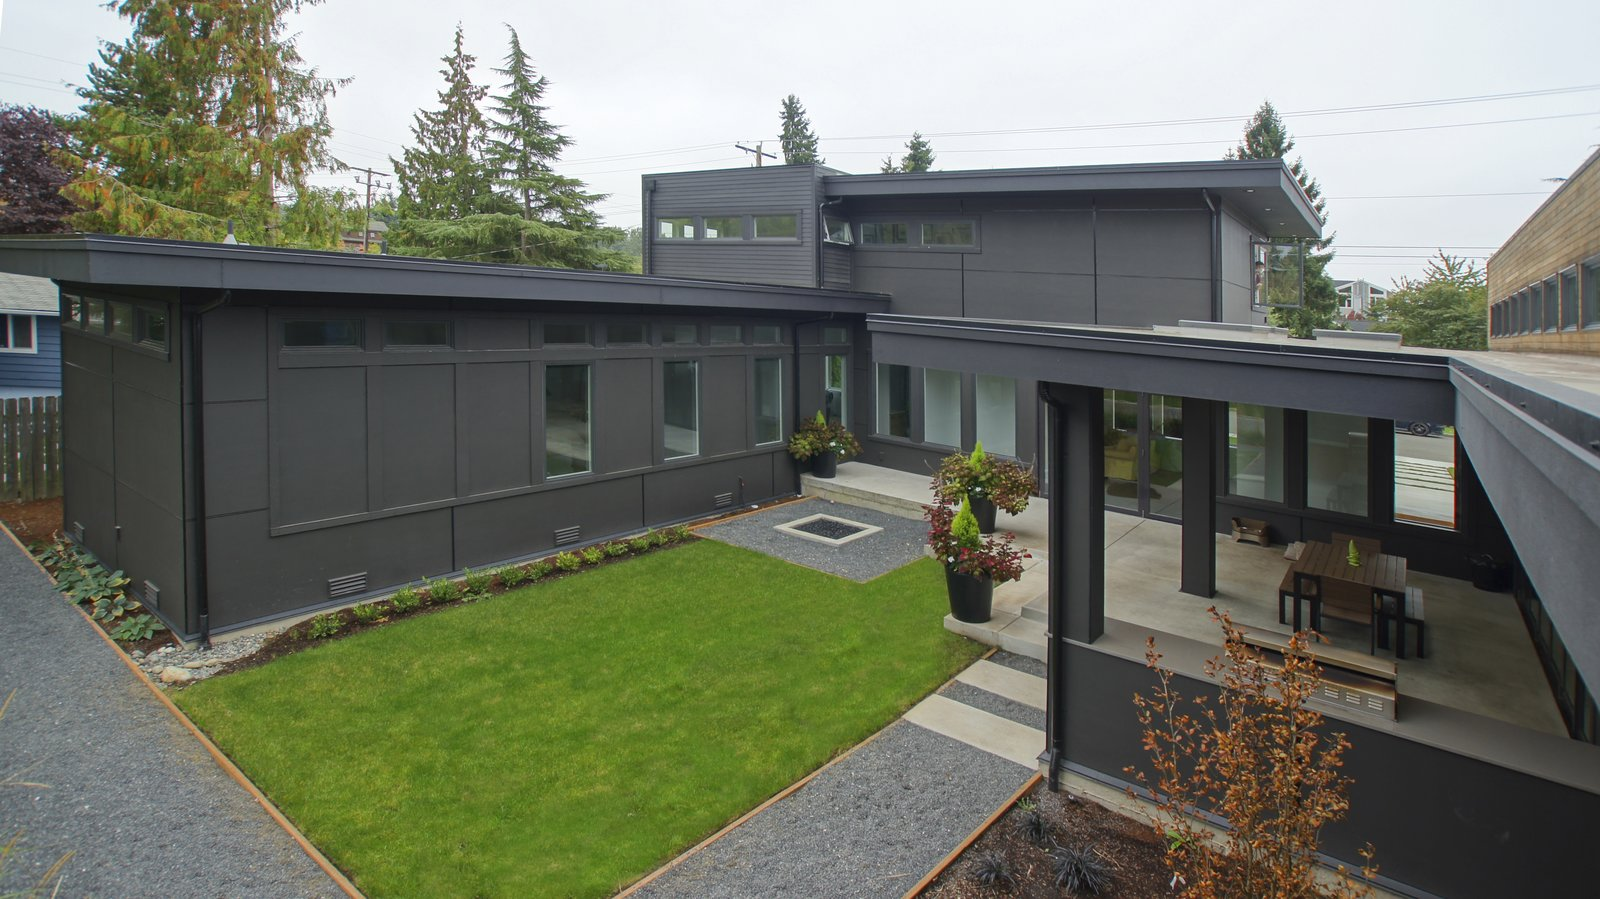 The backyard is designed to take advantage of the abundant space and allows for plenty of outdoor living throughout the year in the beautiful Pacific Northwest.  Modern Courtyard Home by Atelier Drome